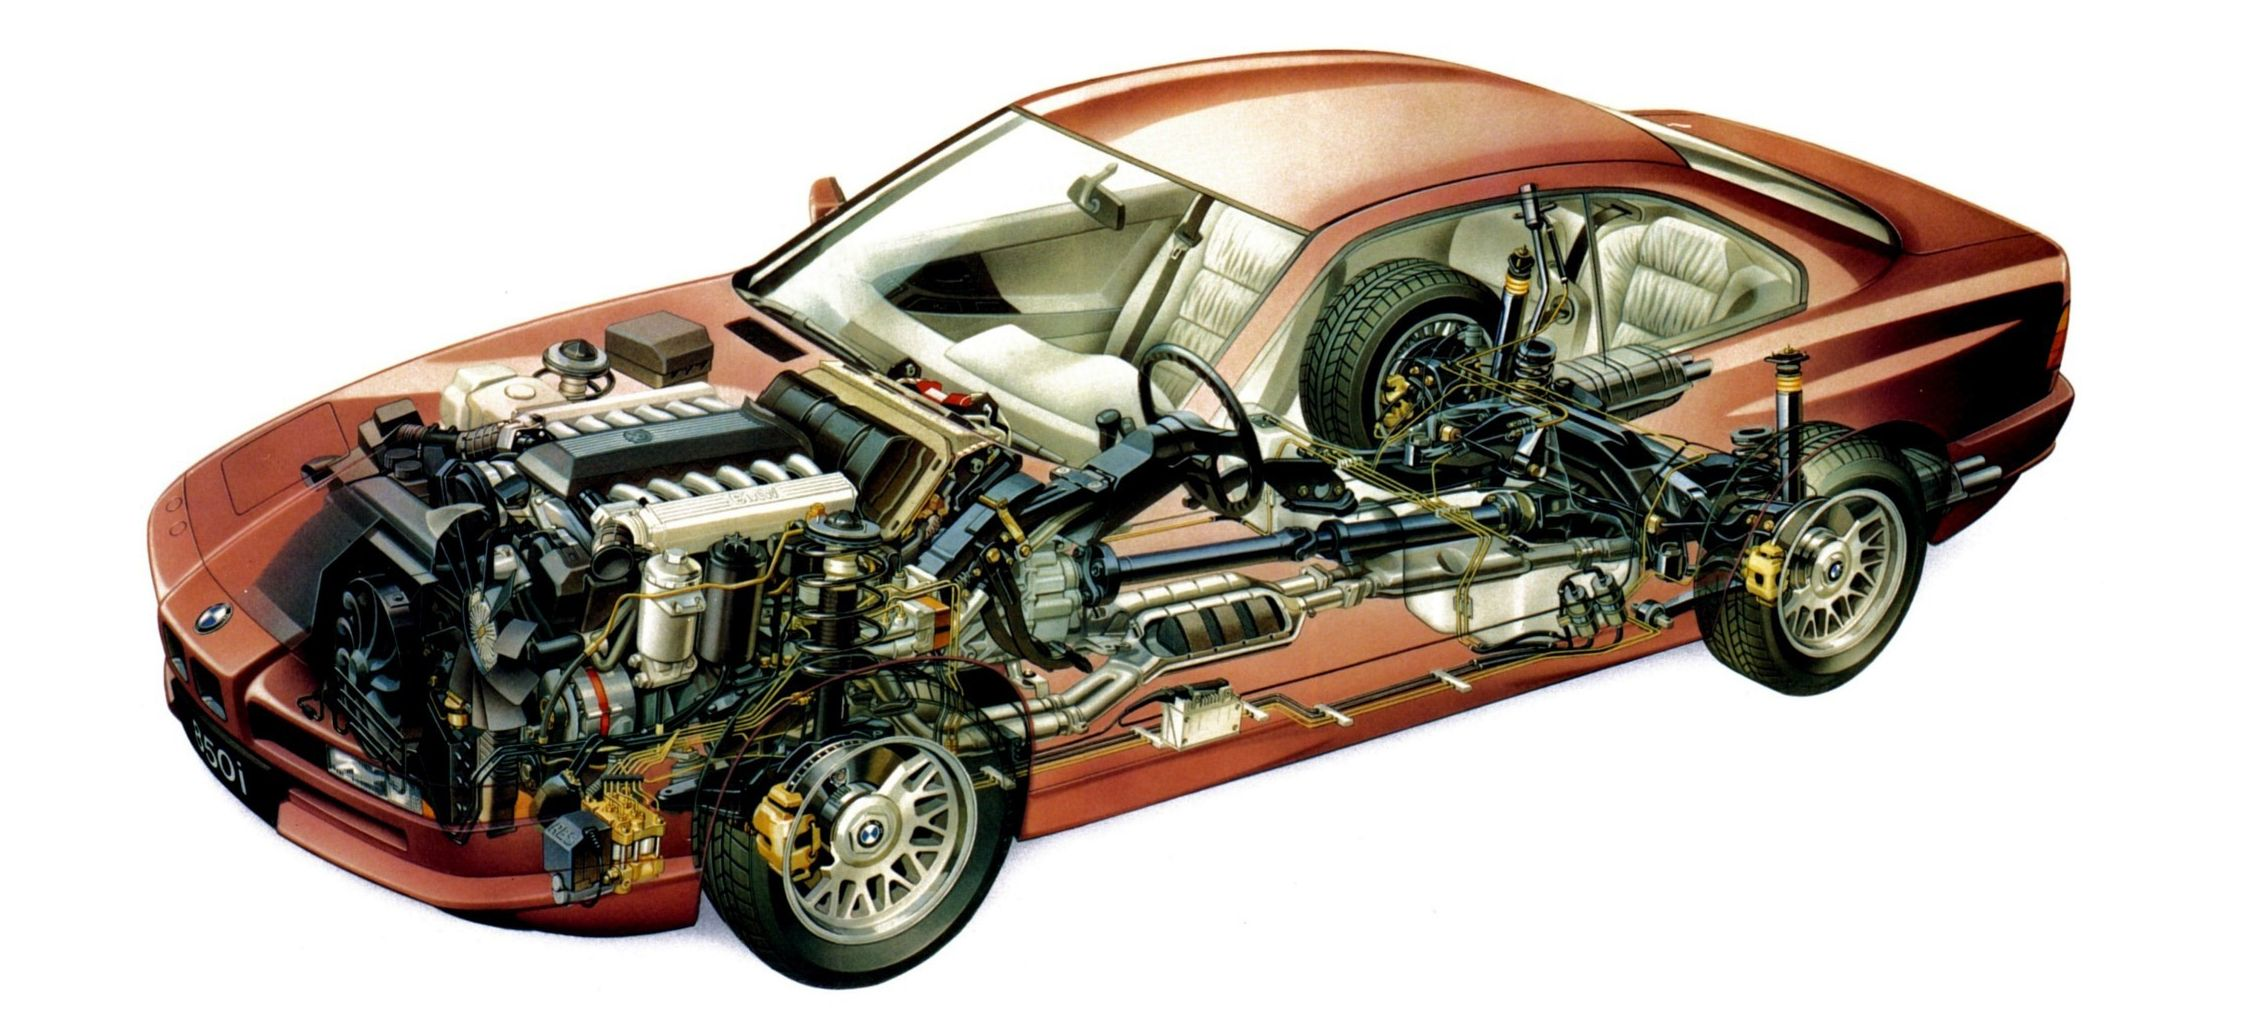 Does Your Car Have More Computers Than A BMW 850i? | Auto Cutaways